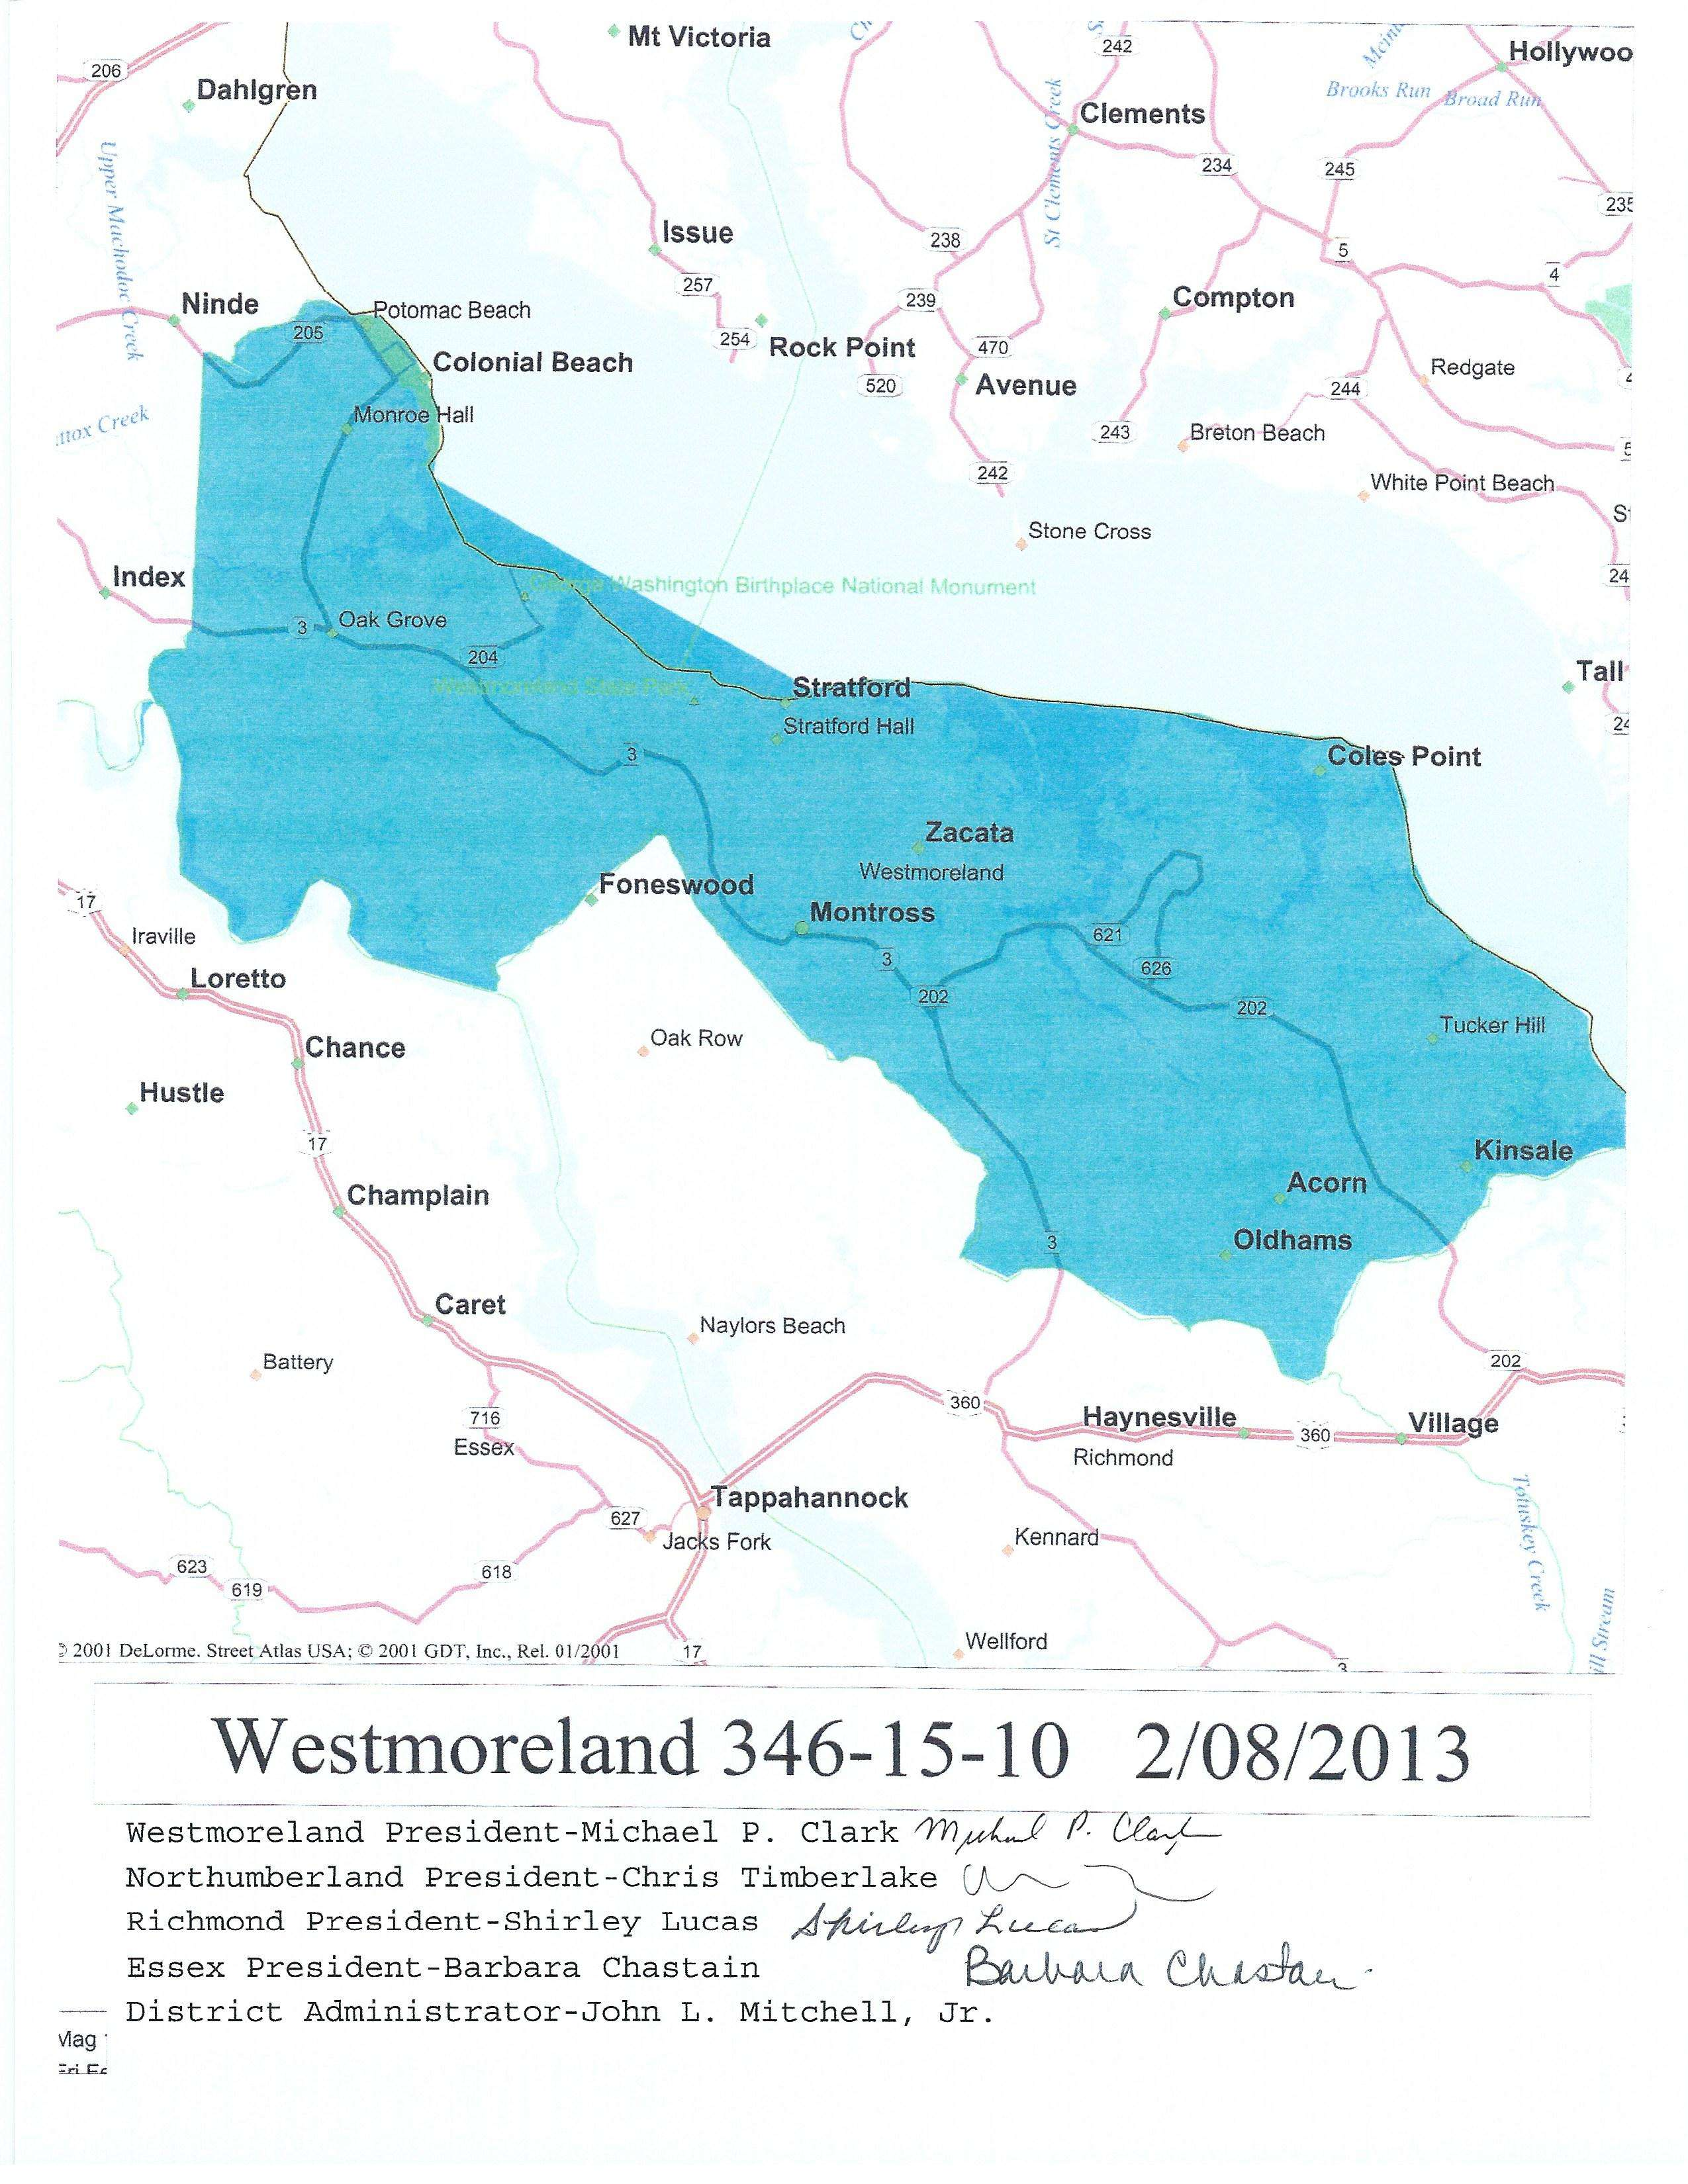 2013 Westmoreland.jpg